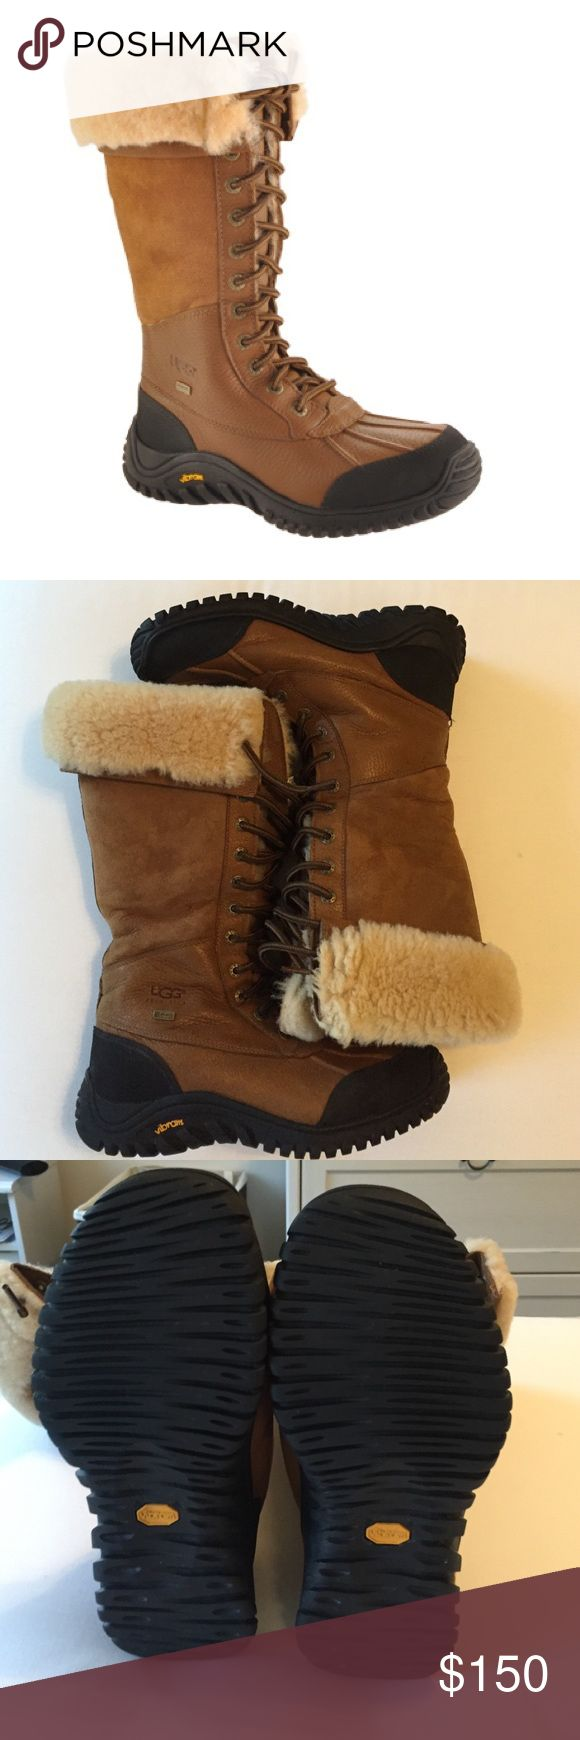 UGG Adirondack Tall Boot Excellent used condition. I have only worn these a few times. I unfortunately have no need for them anymore because it doesn't snow or get too cold where I live now. I guarantee you will love these! 100% authentic. UGG Shoes Winter & Rain Boots